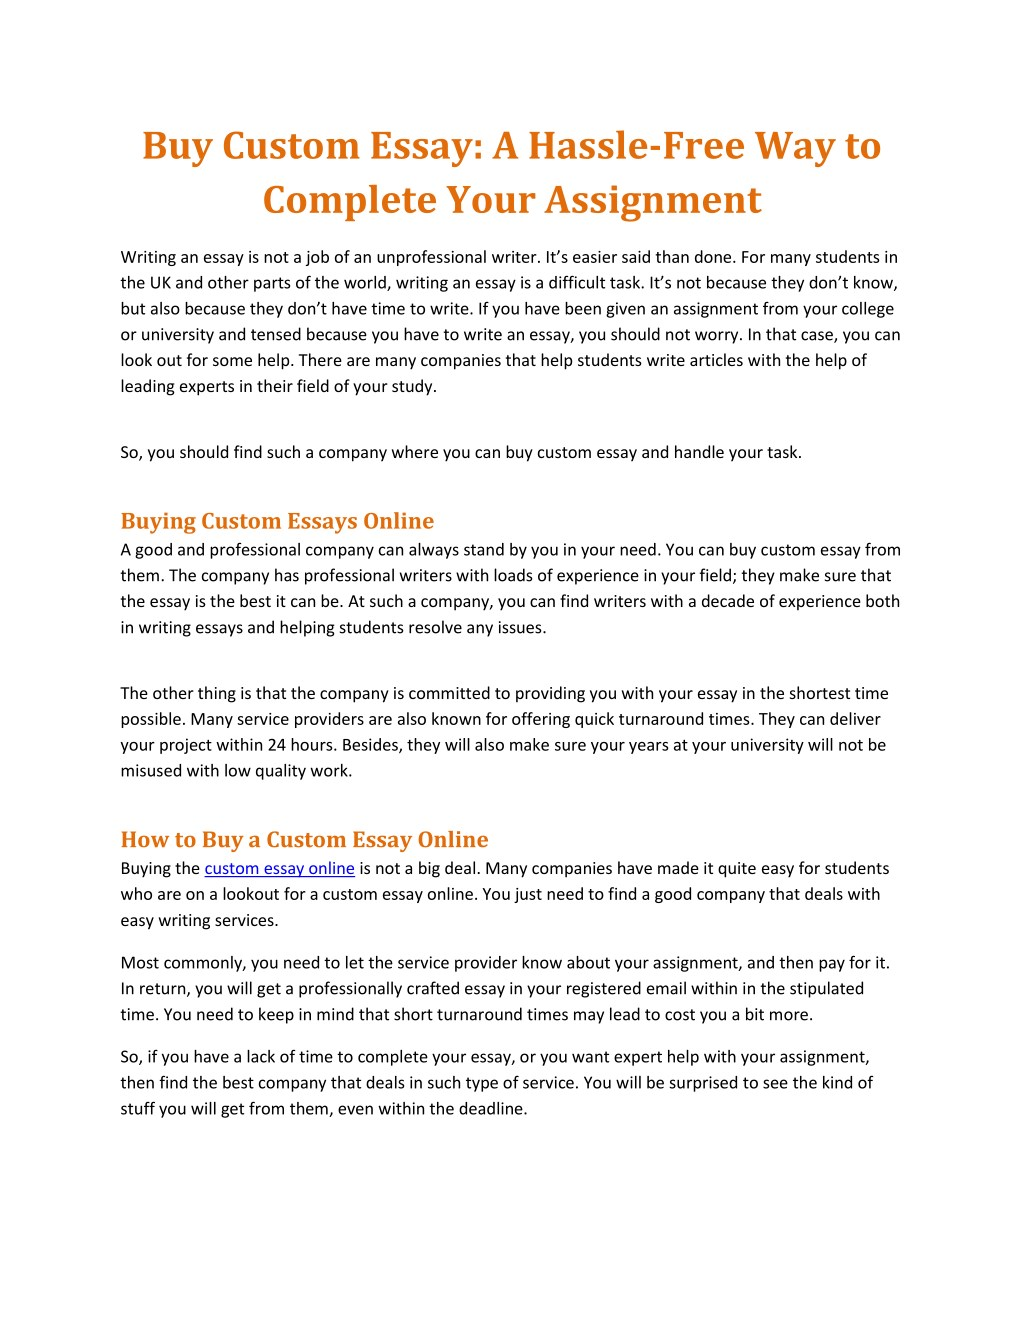 001 Buy Essays Custom Essay Hassle Free Way To Complete L Fantastic Essayshark Account Online No Plagiarism Full